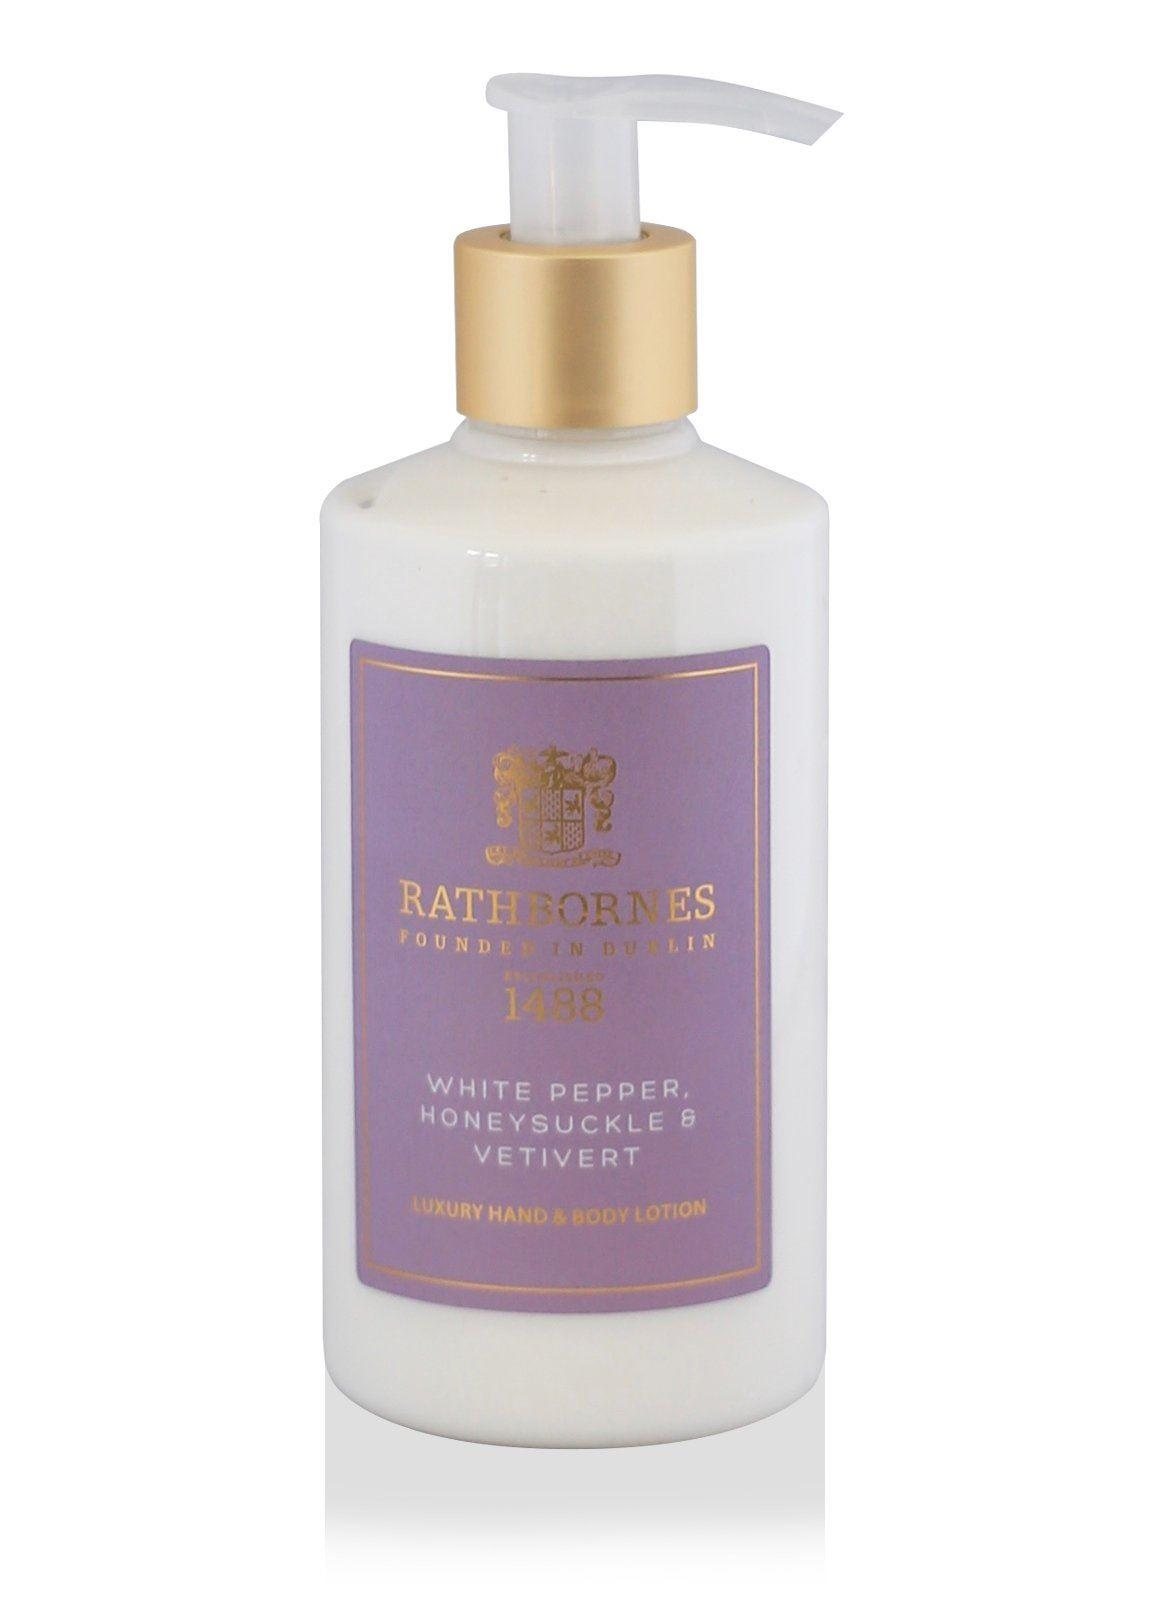 Rathbornes 1488 White Pepper, Honeysuckle & Vertivert Hand & Body Lotion